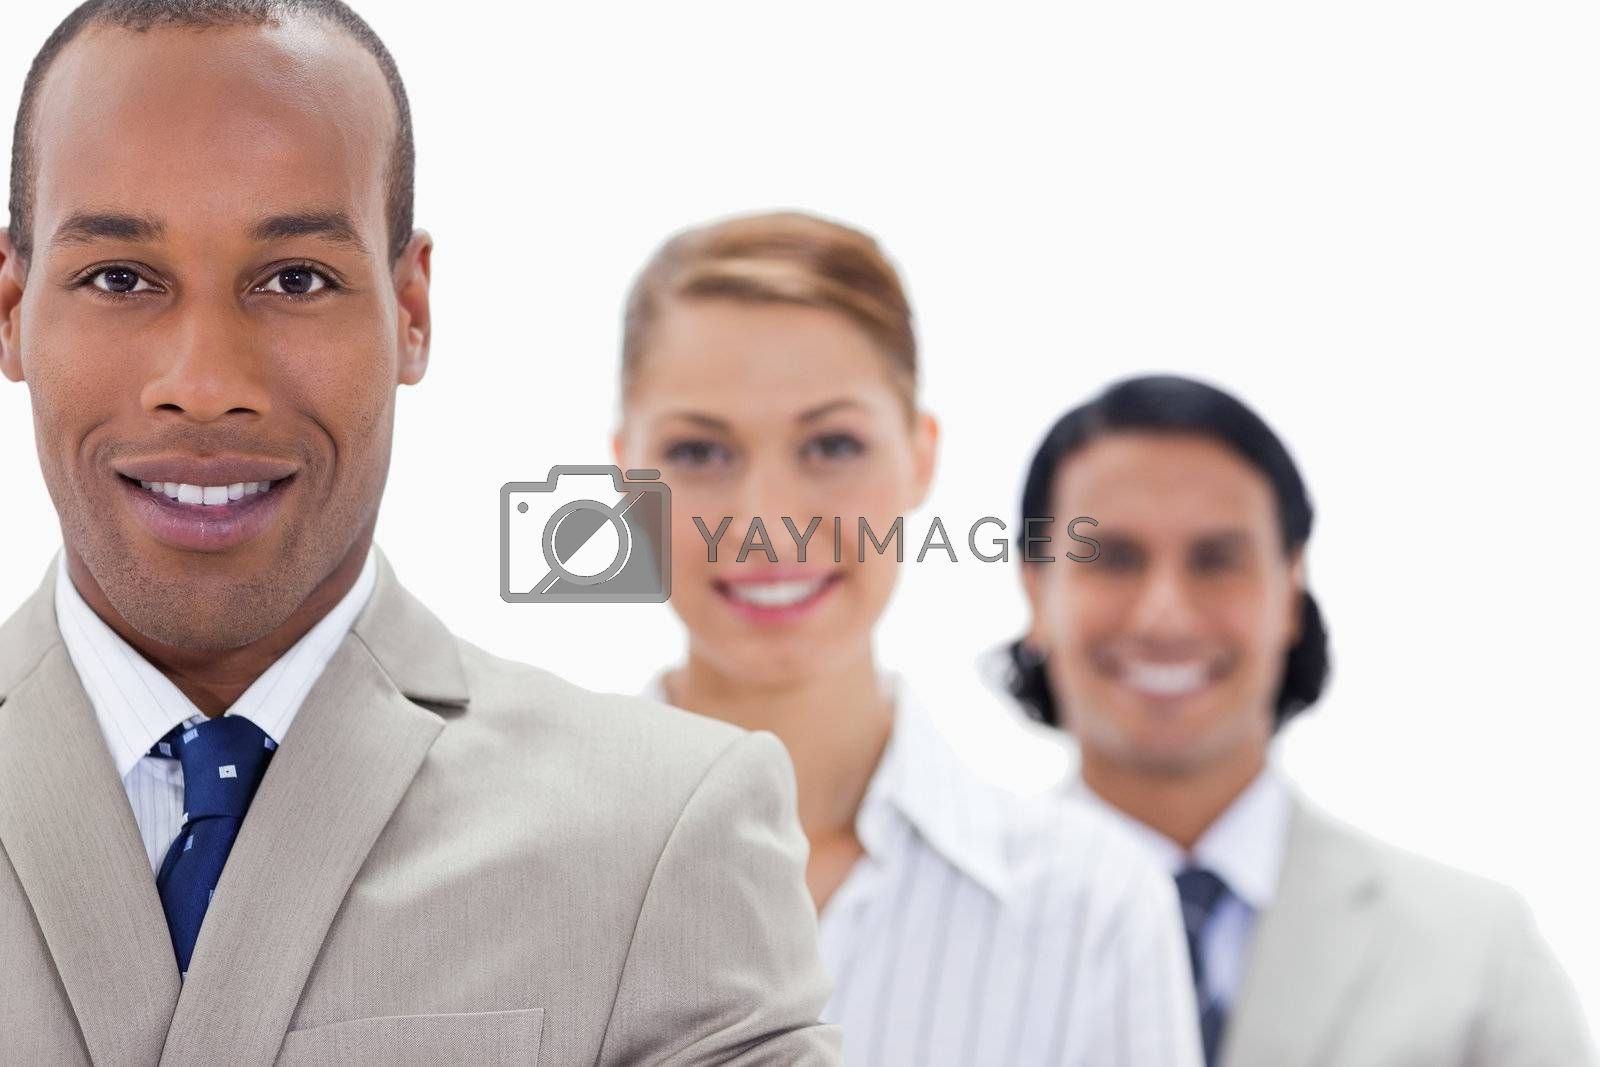 Big close-up of workmates in a single line smiling with focus on the first man